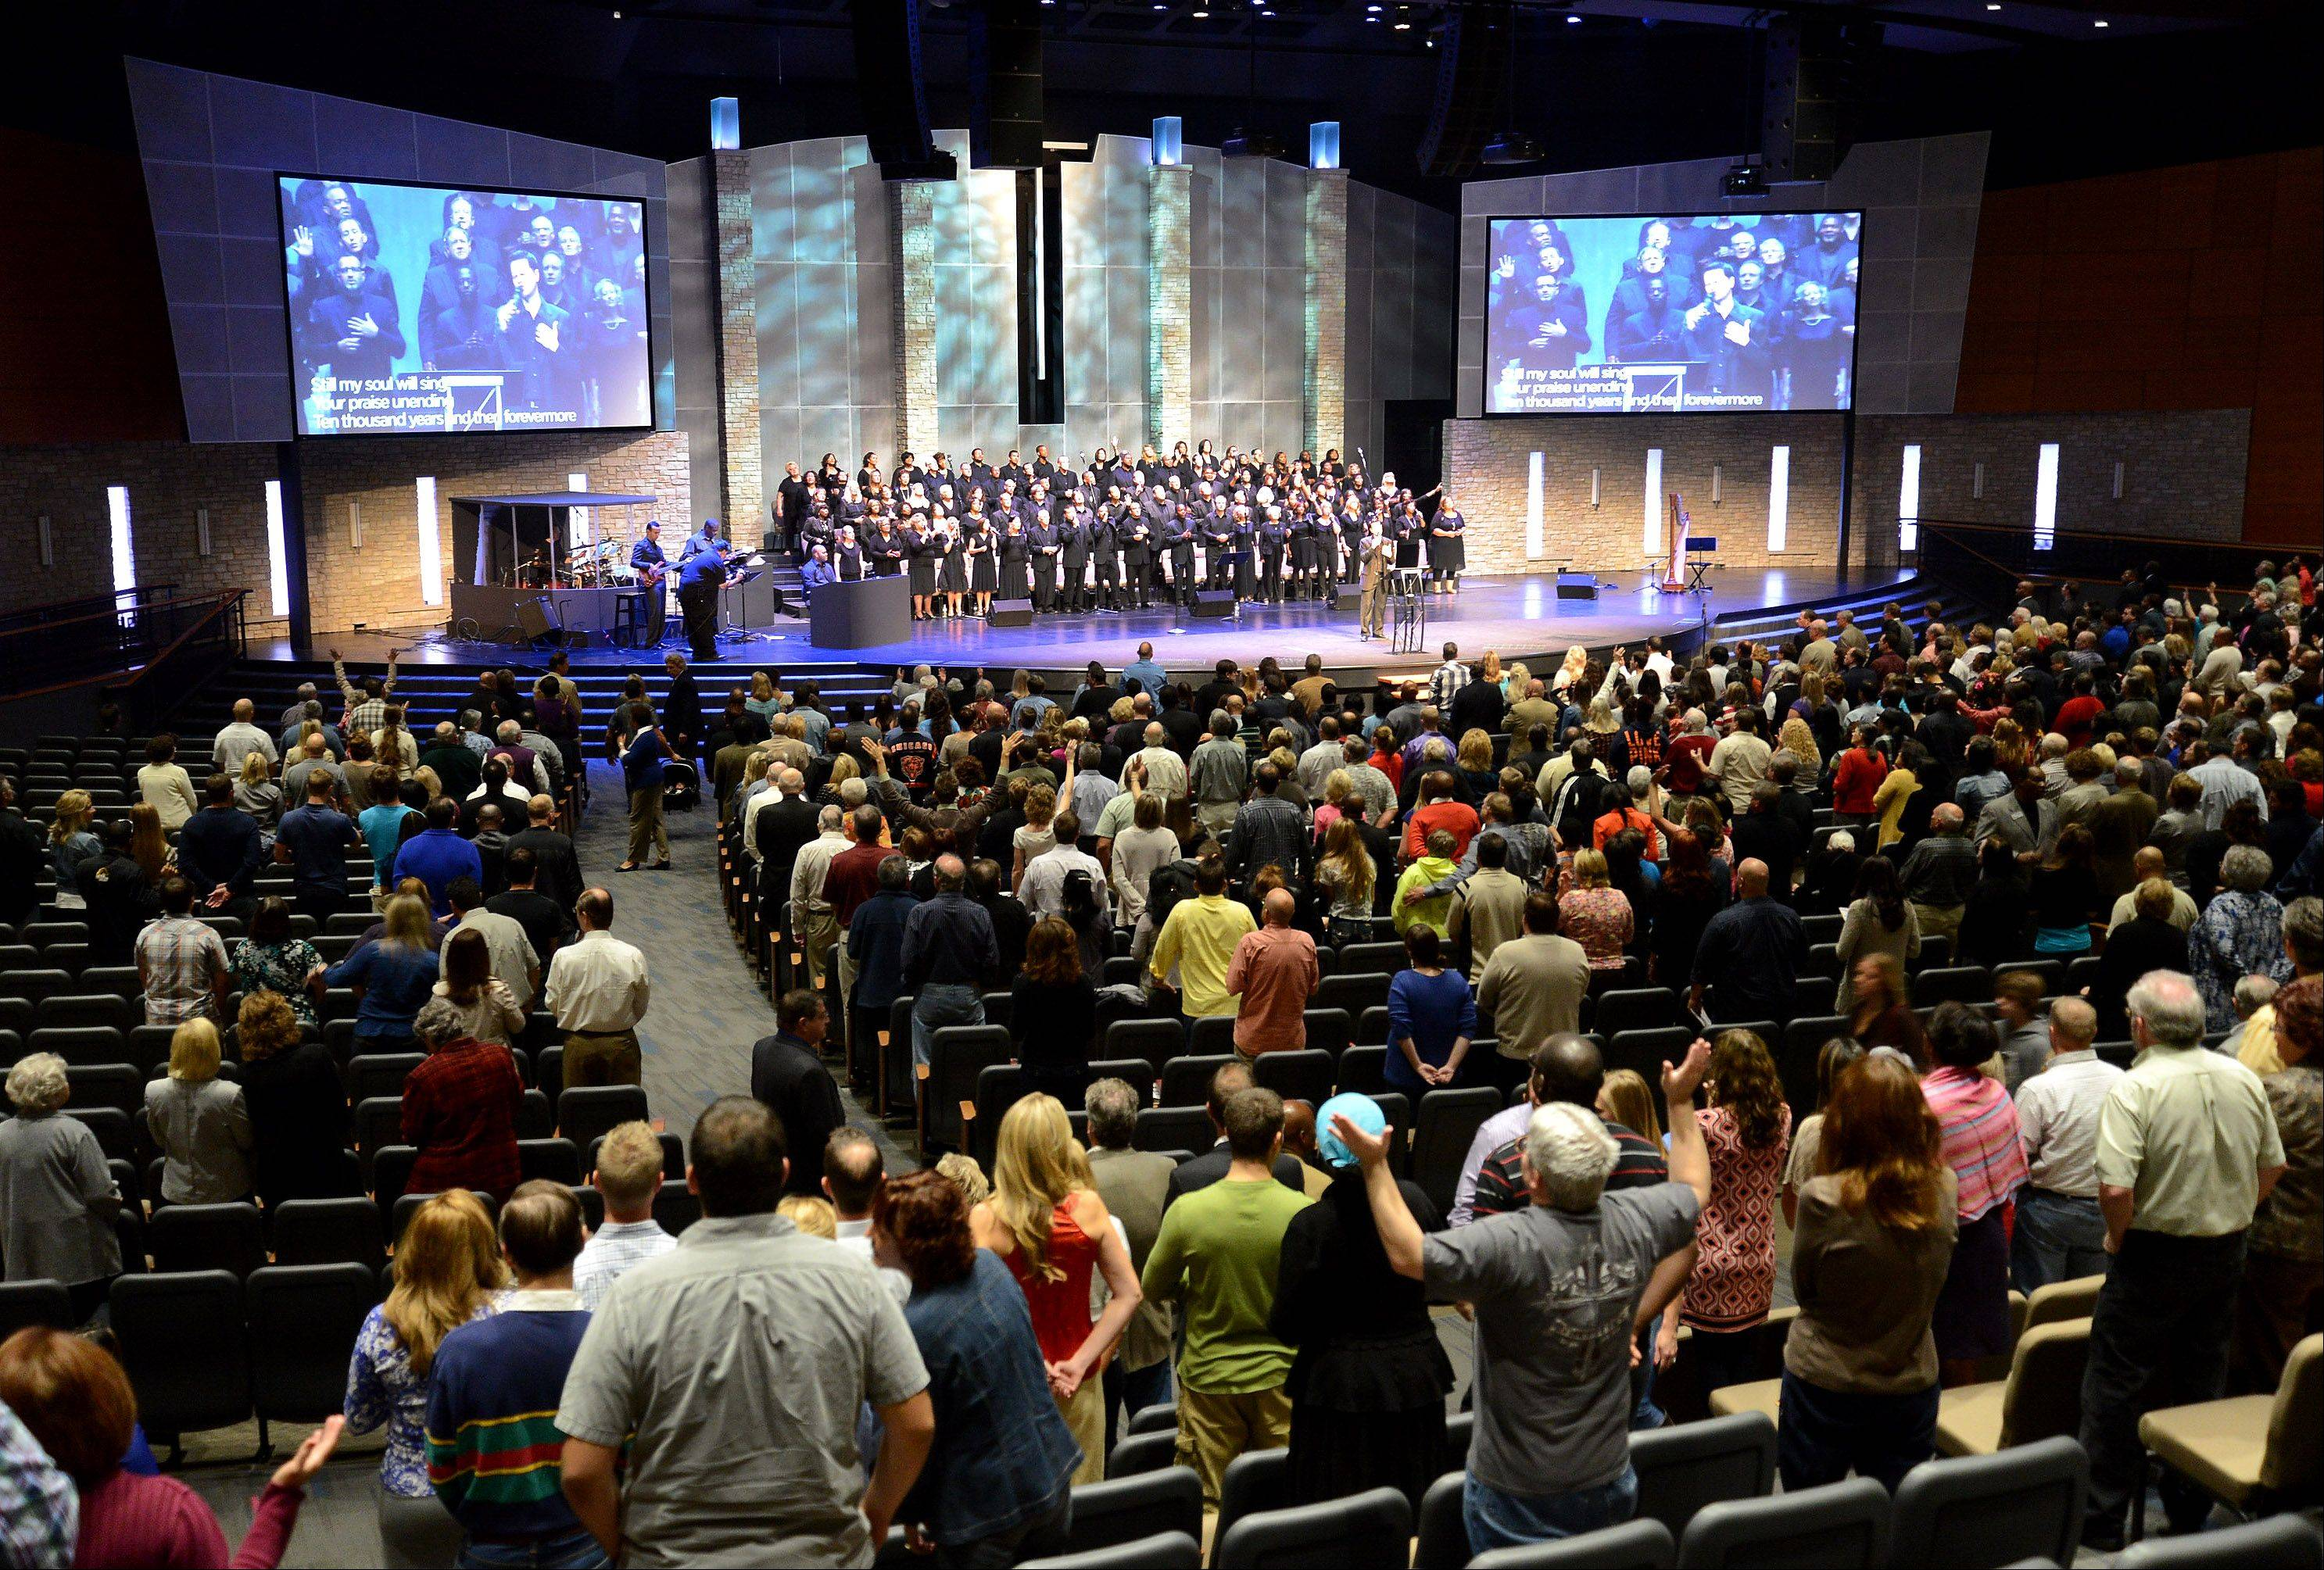 Calvary Church in Naperville opened its newly renovated auditorium Sunday after more than five months of construction. The choir and orchestra lead the congregation through a history of worship.